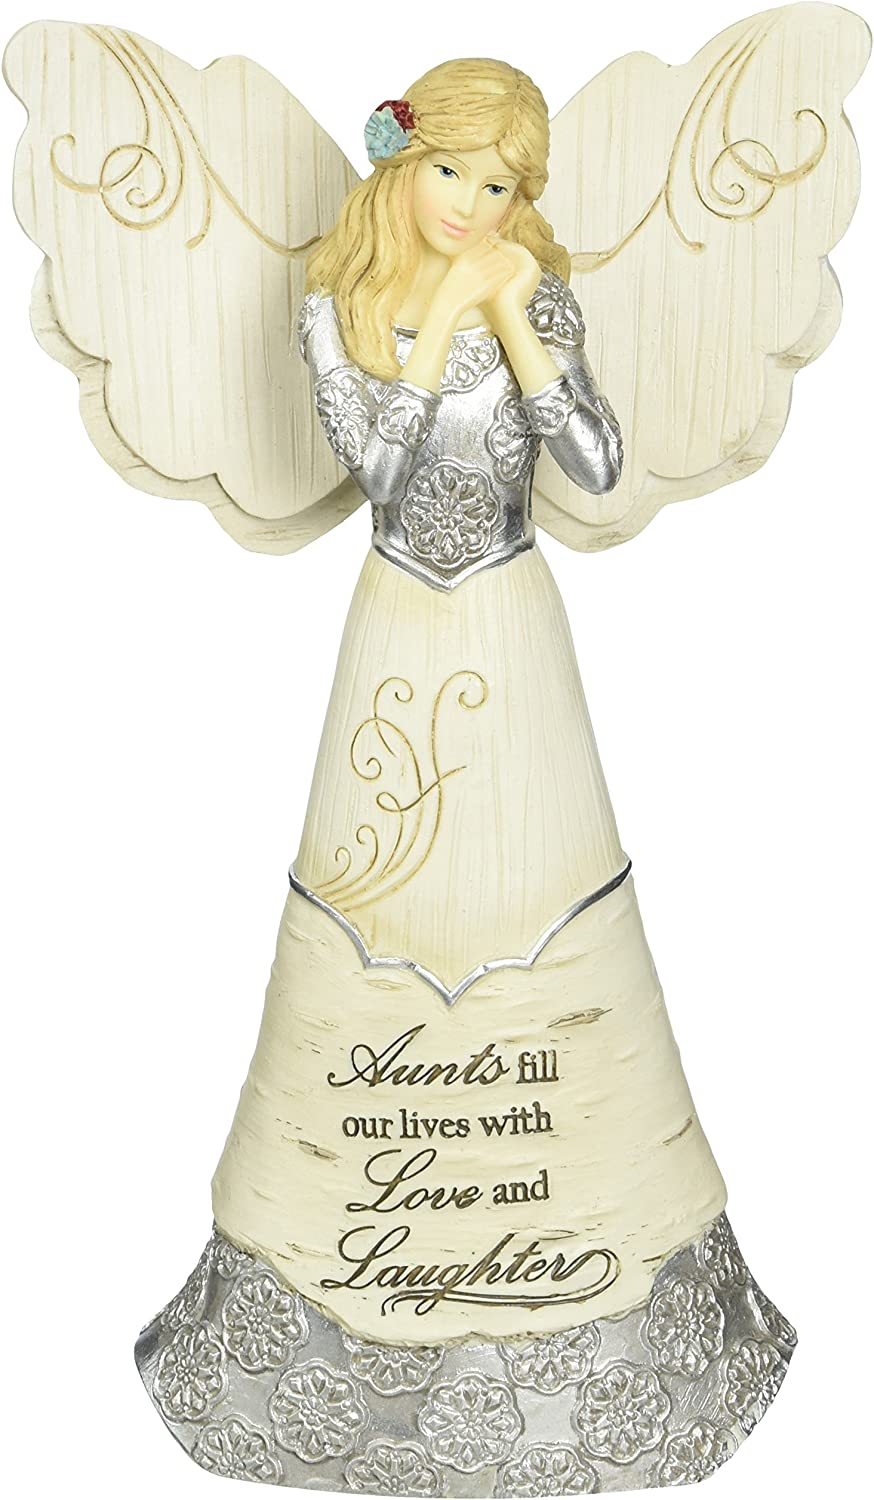 Elements Aunt Angel Figurine by Pavilion, 6-Inch, Inscription Aunts Fill Our Lives with Love and Laughter